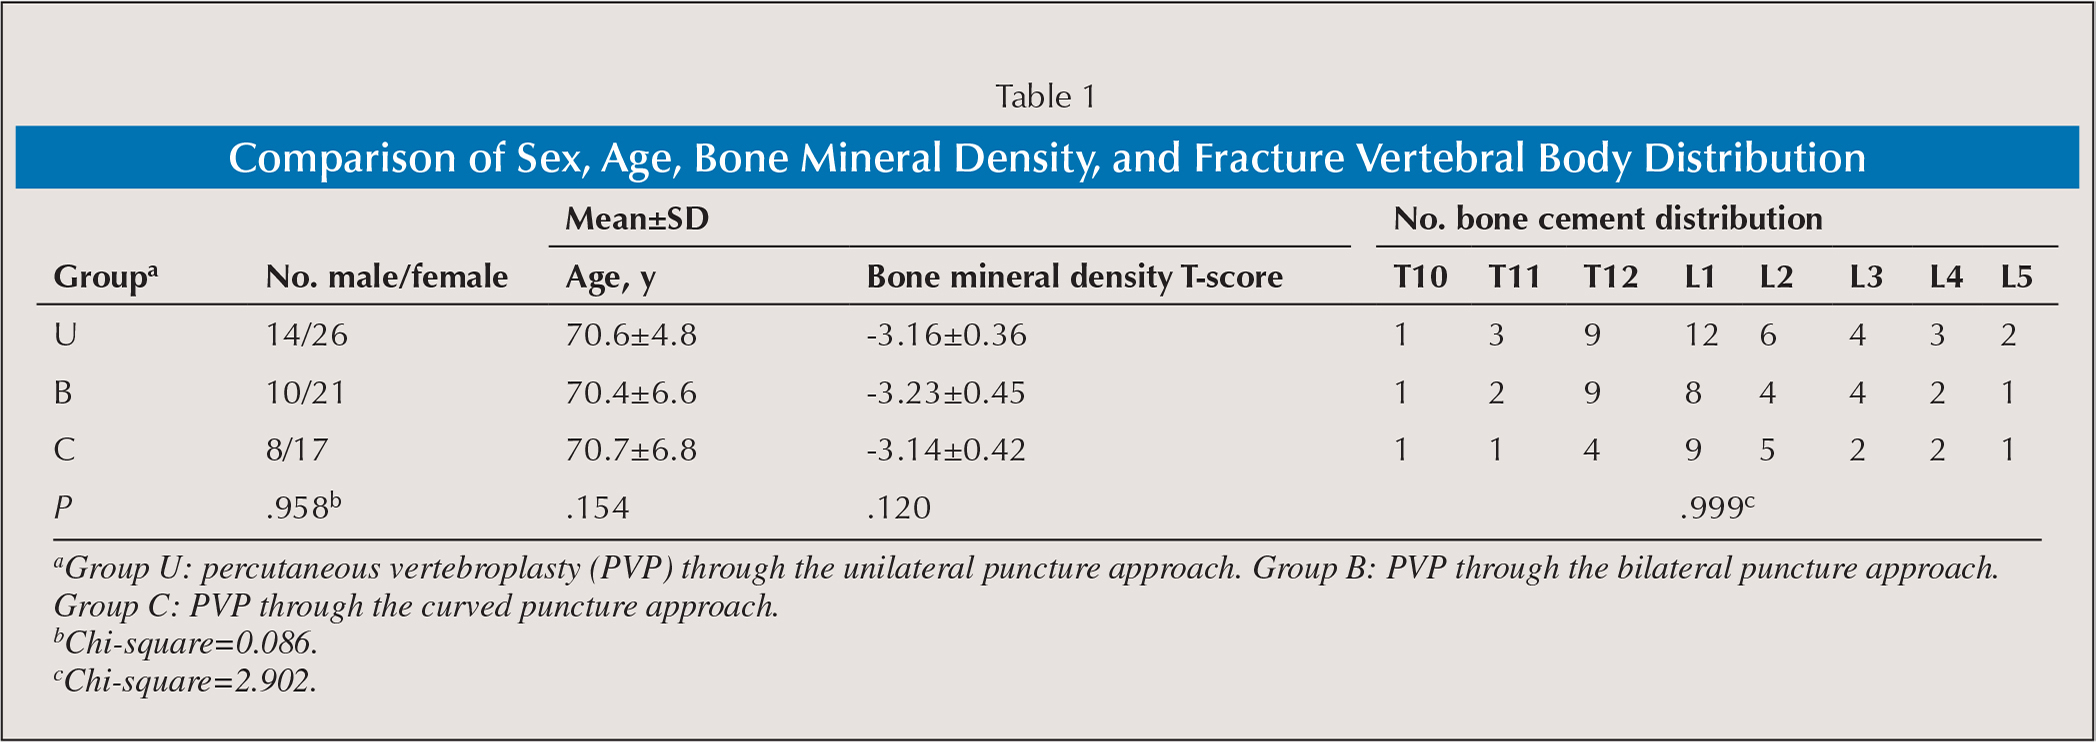 Comparison of Sex, Age, Bone Mineral Density, and Fracture Vertebral Body Distribution